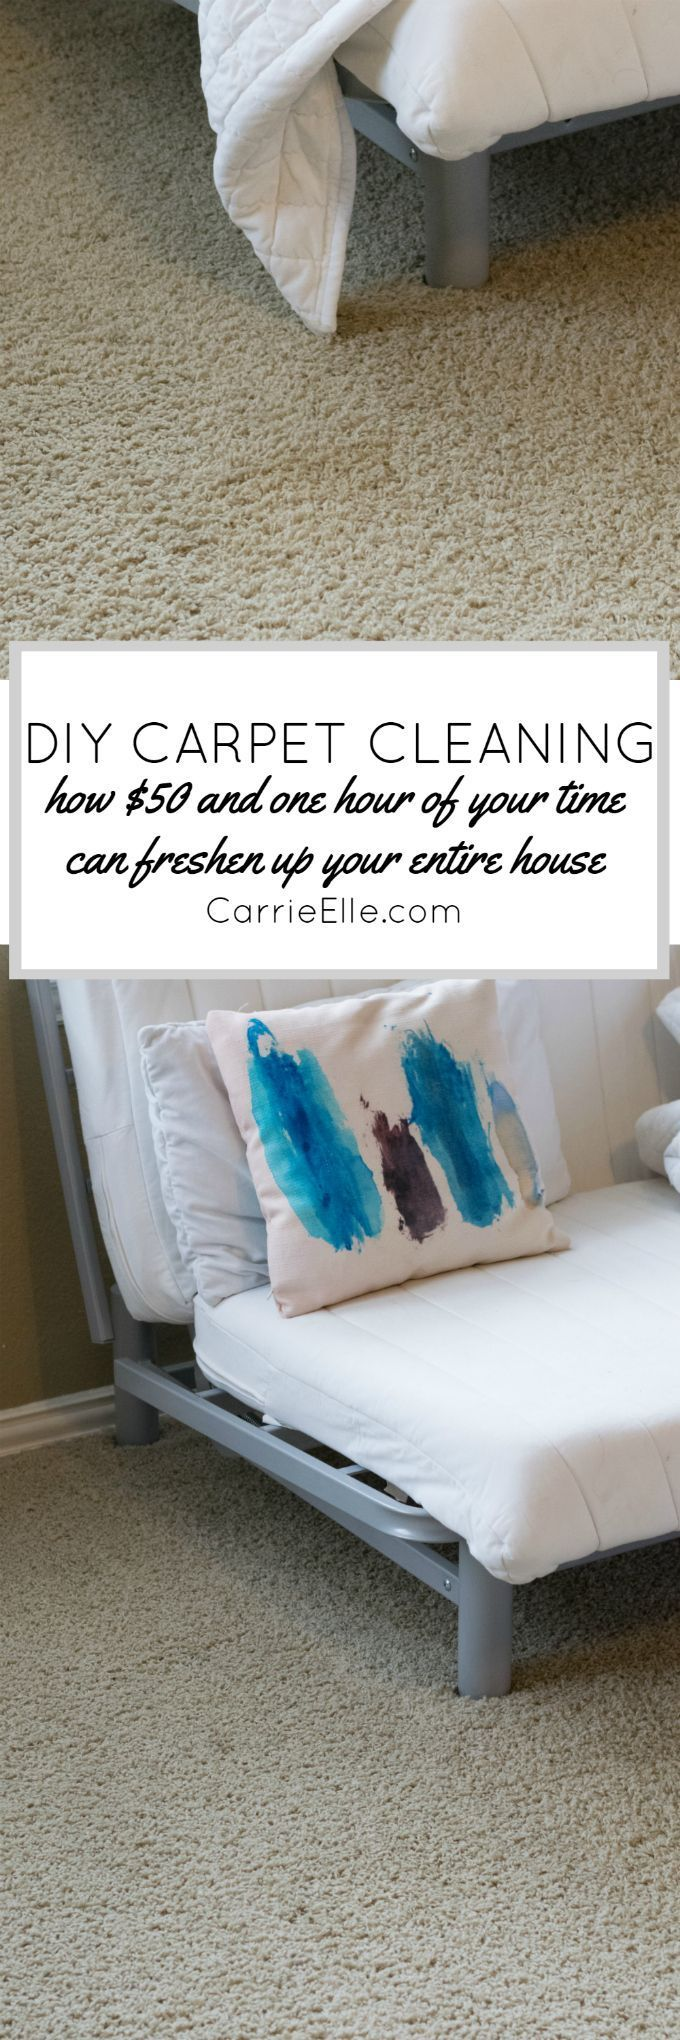 DIY Carpet Cleaning: How $50 and One Hour of Work Freshened Up Our Entire House ...,  #Carpet #cleaning #DIY #Entire #Freshened #hour #House #Work